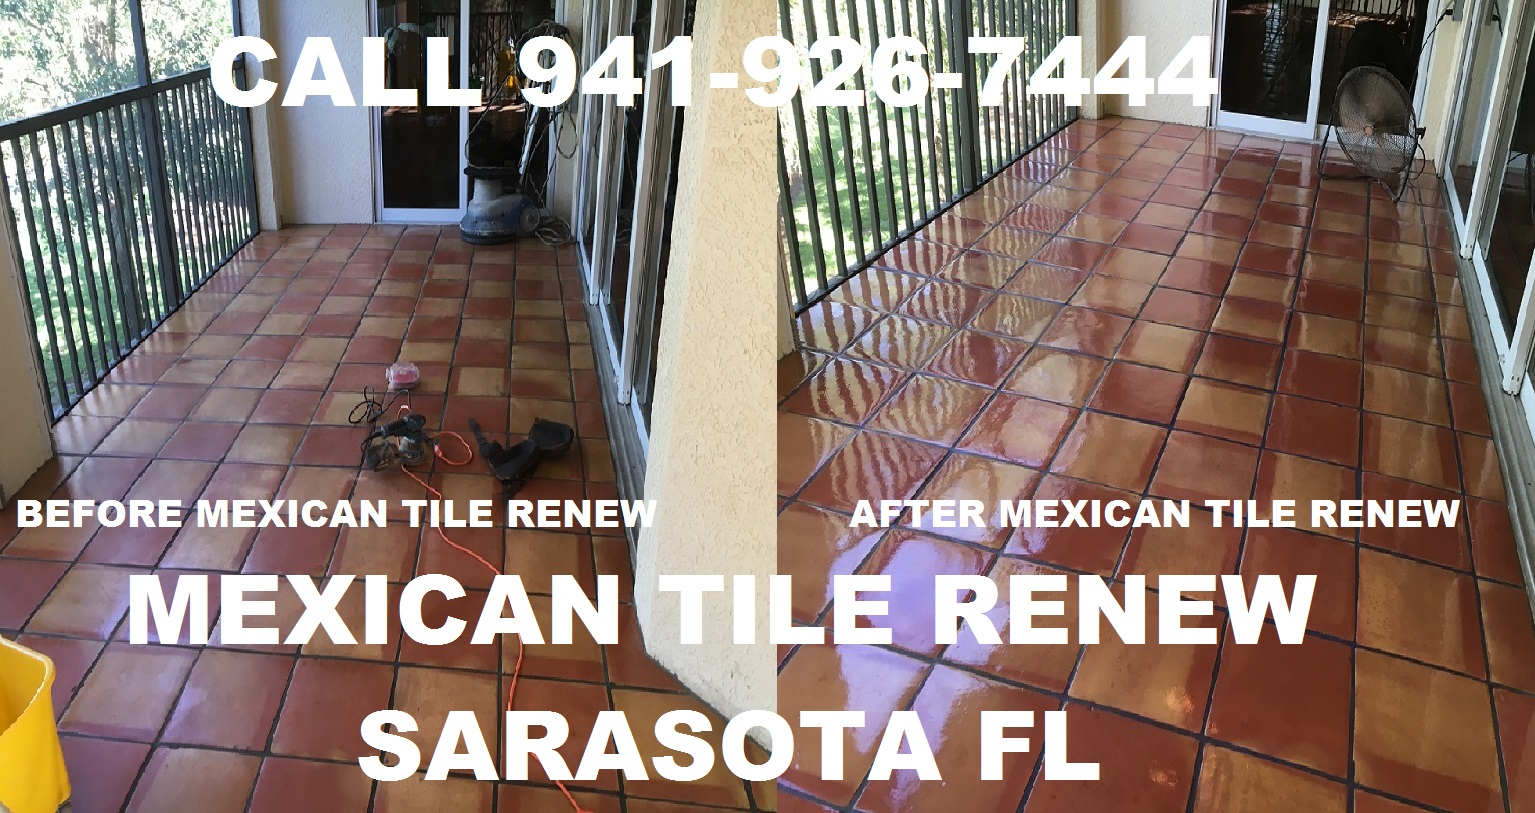 Bbb business review mexican tile renew is bbb accredited mexican tile renew outdoor project in fort myers fl where black grout had stained the saltillo tiles dailygadgetfo Image collections